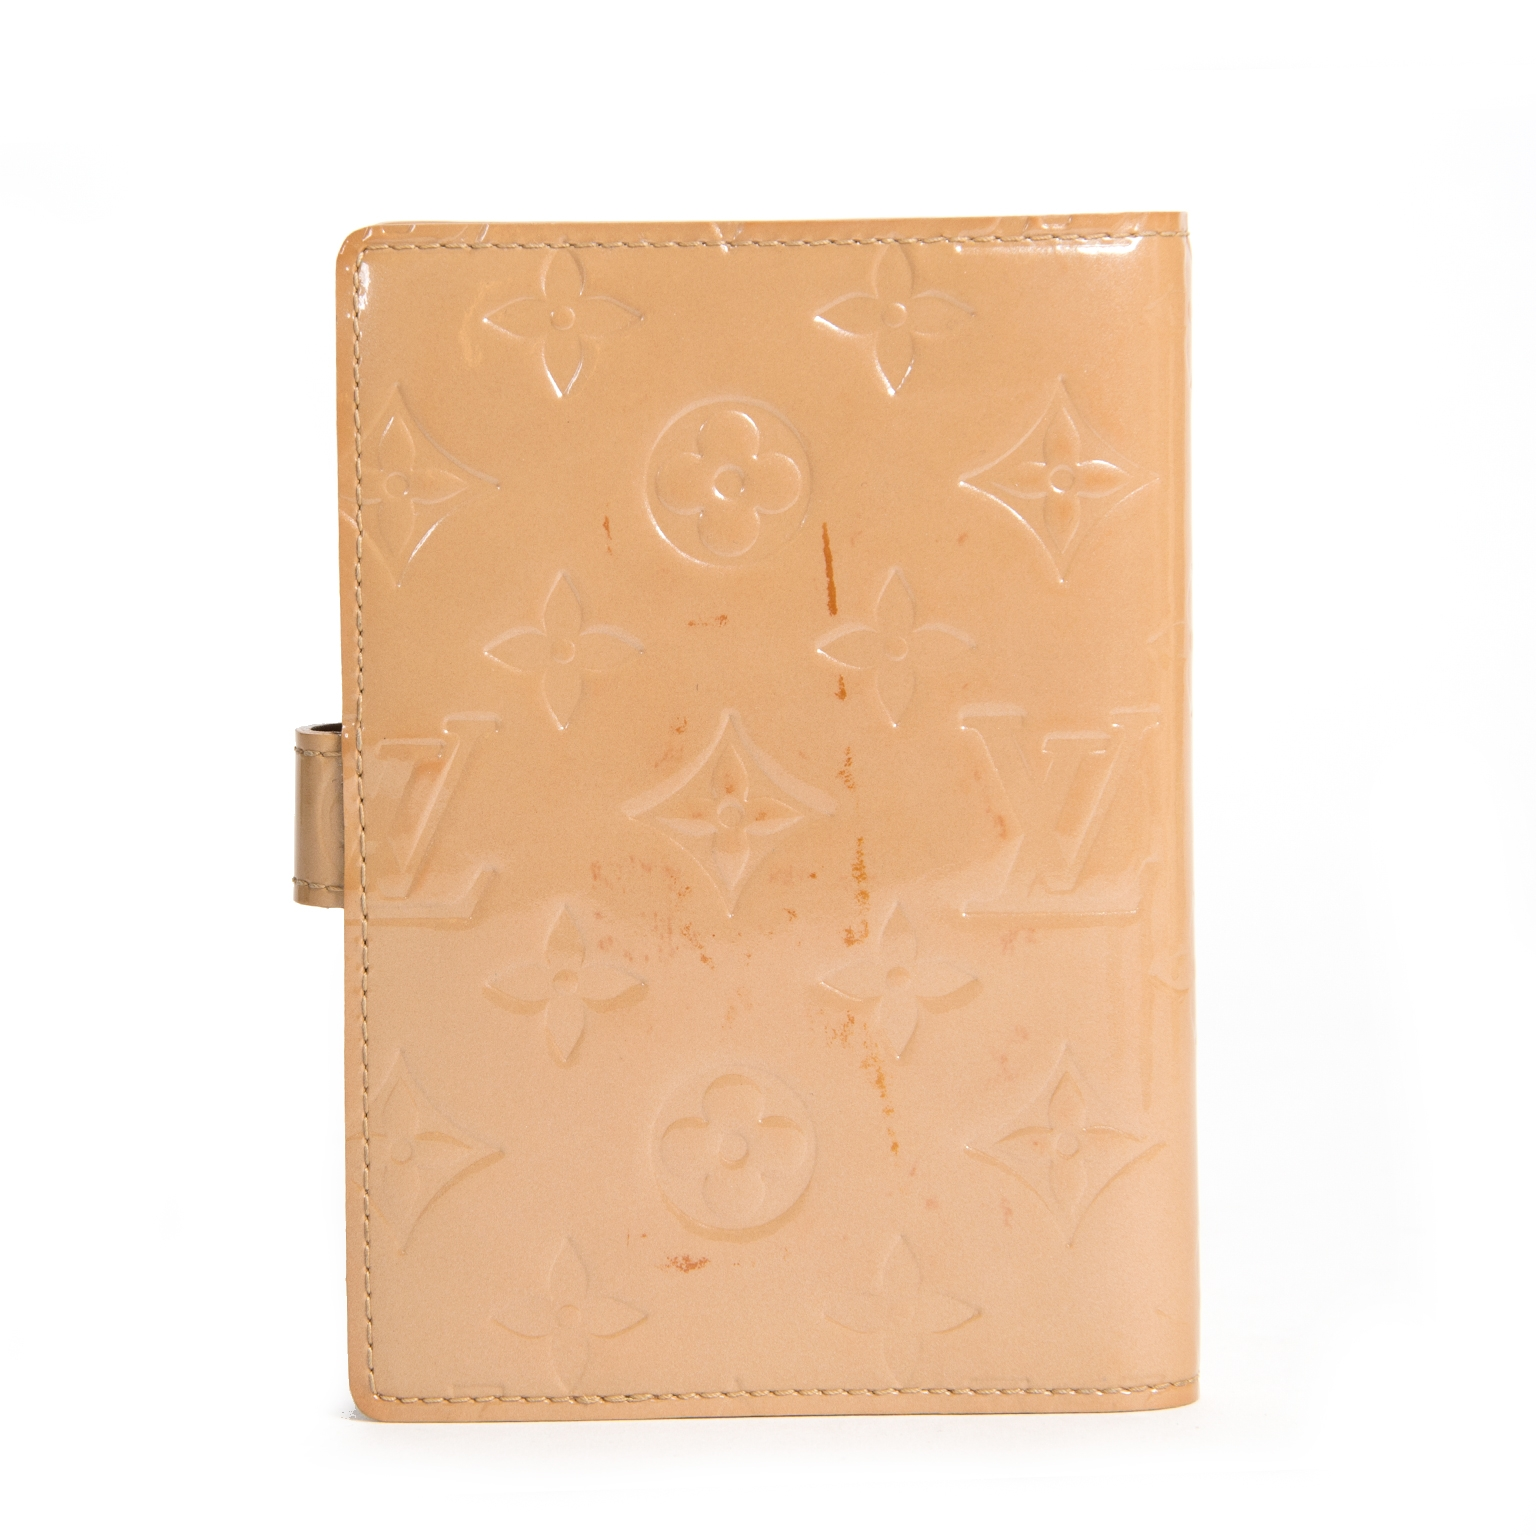 louis vuitton vernis monogram agenda now for sale at labellov vintage fashion webshop belgium